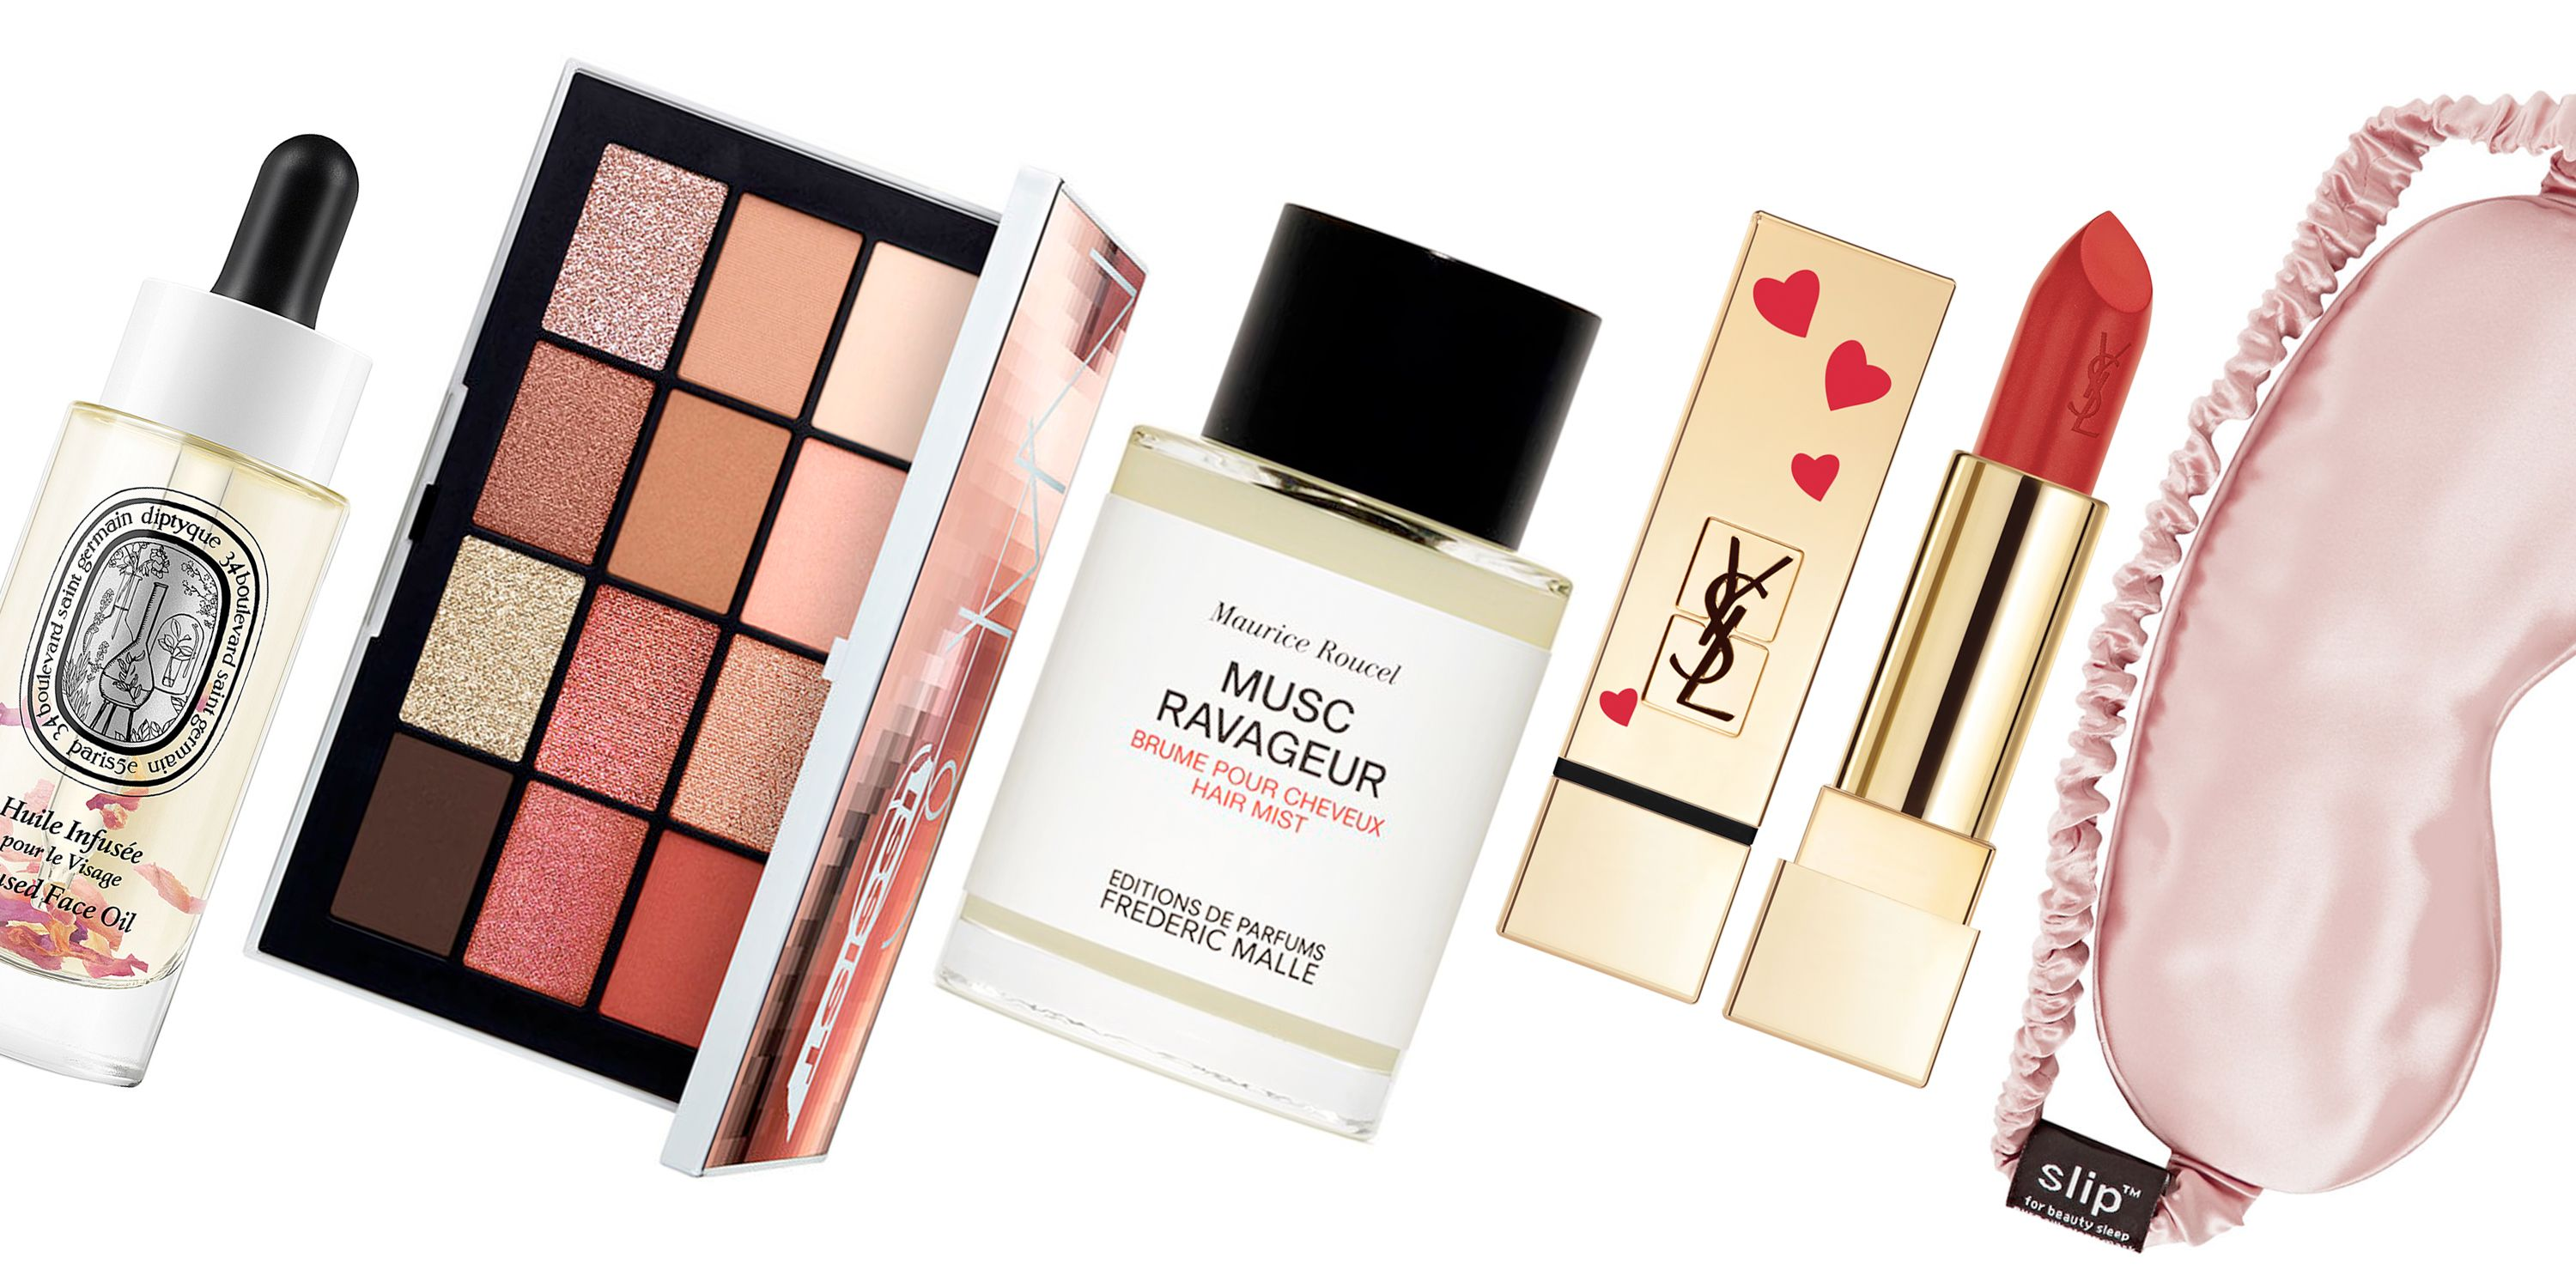 Valentines day beauty gifts